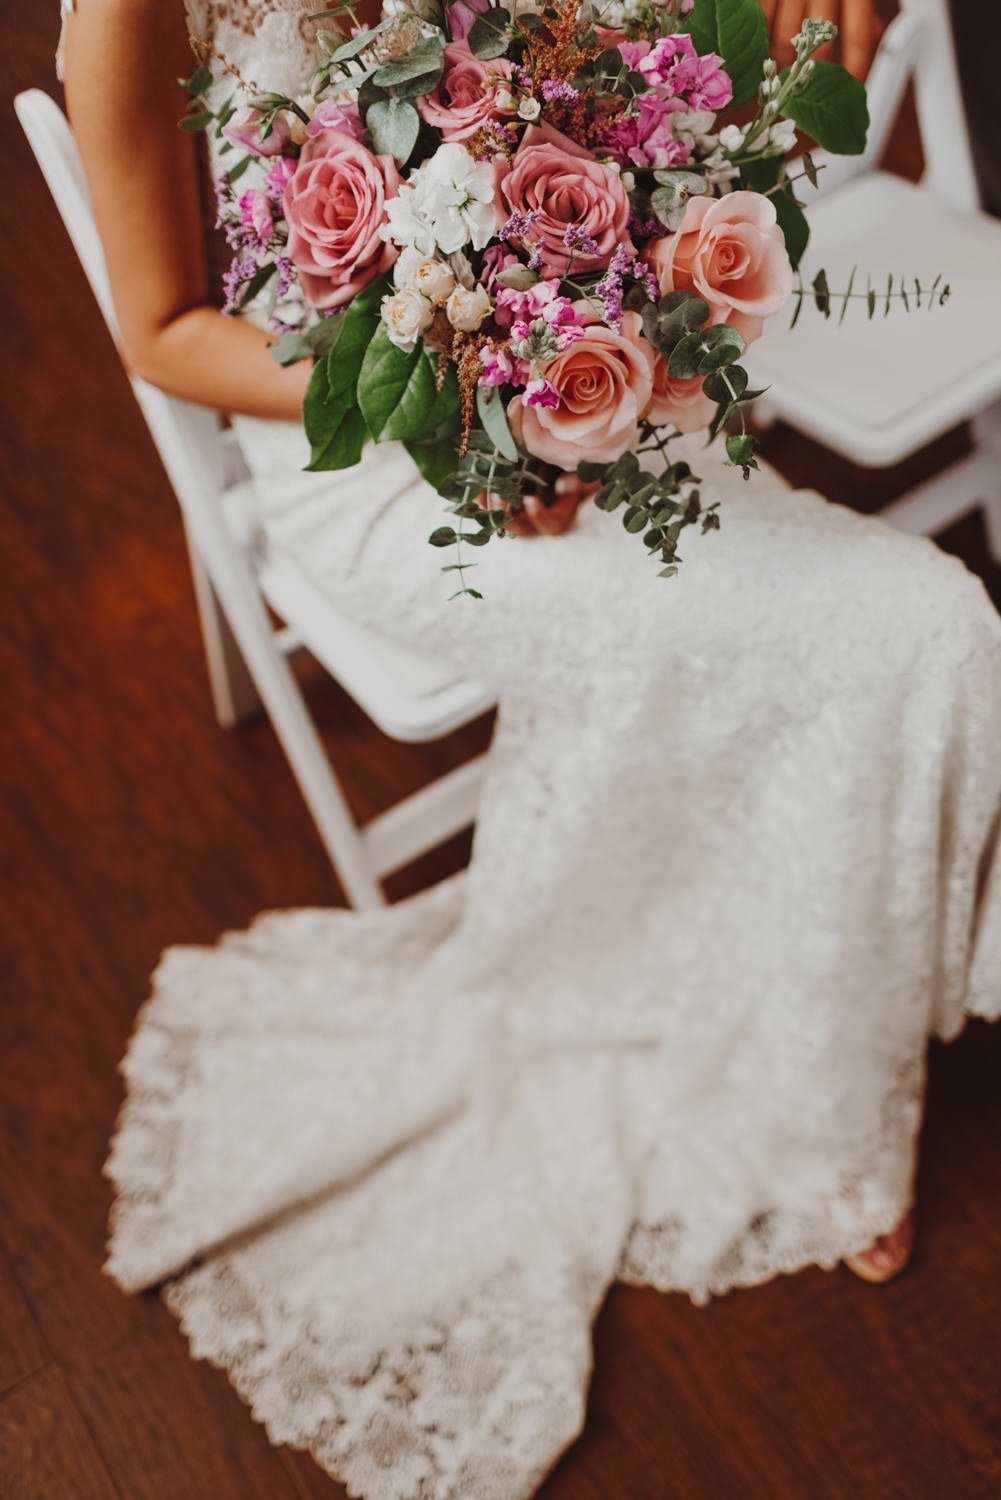 Bride sits in church before wedding ceremony with her bouquet